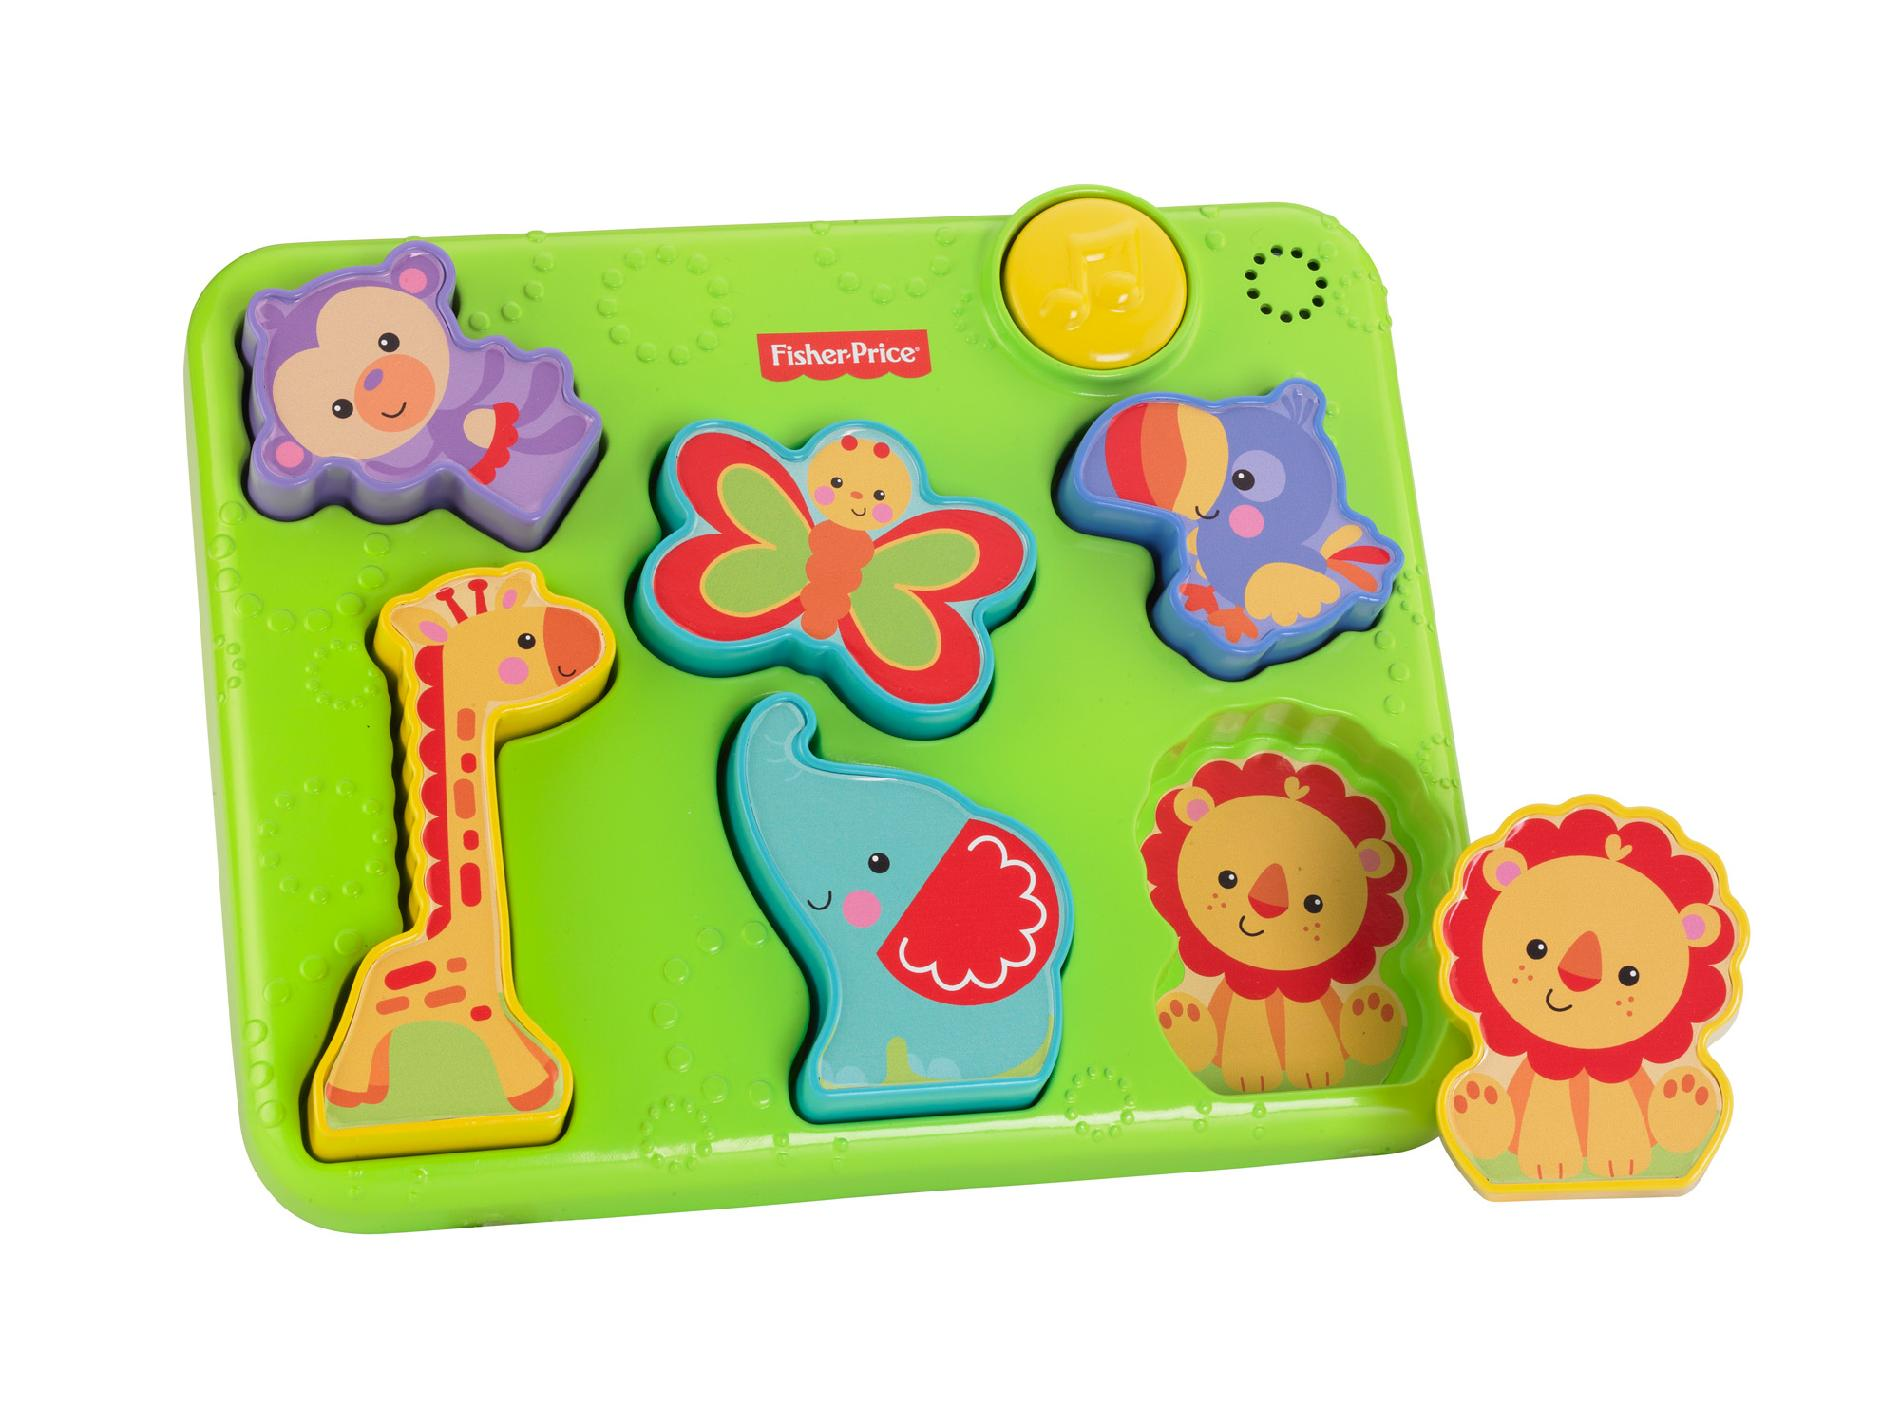 Image of Fisher-Price Silly Sounds Puzzle, Multi-color